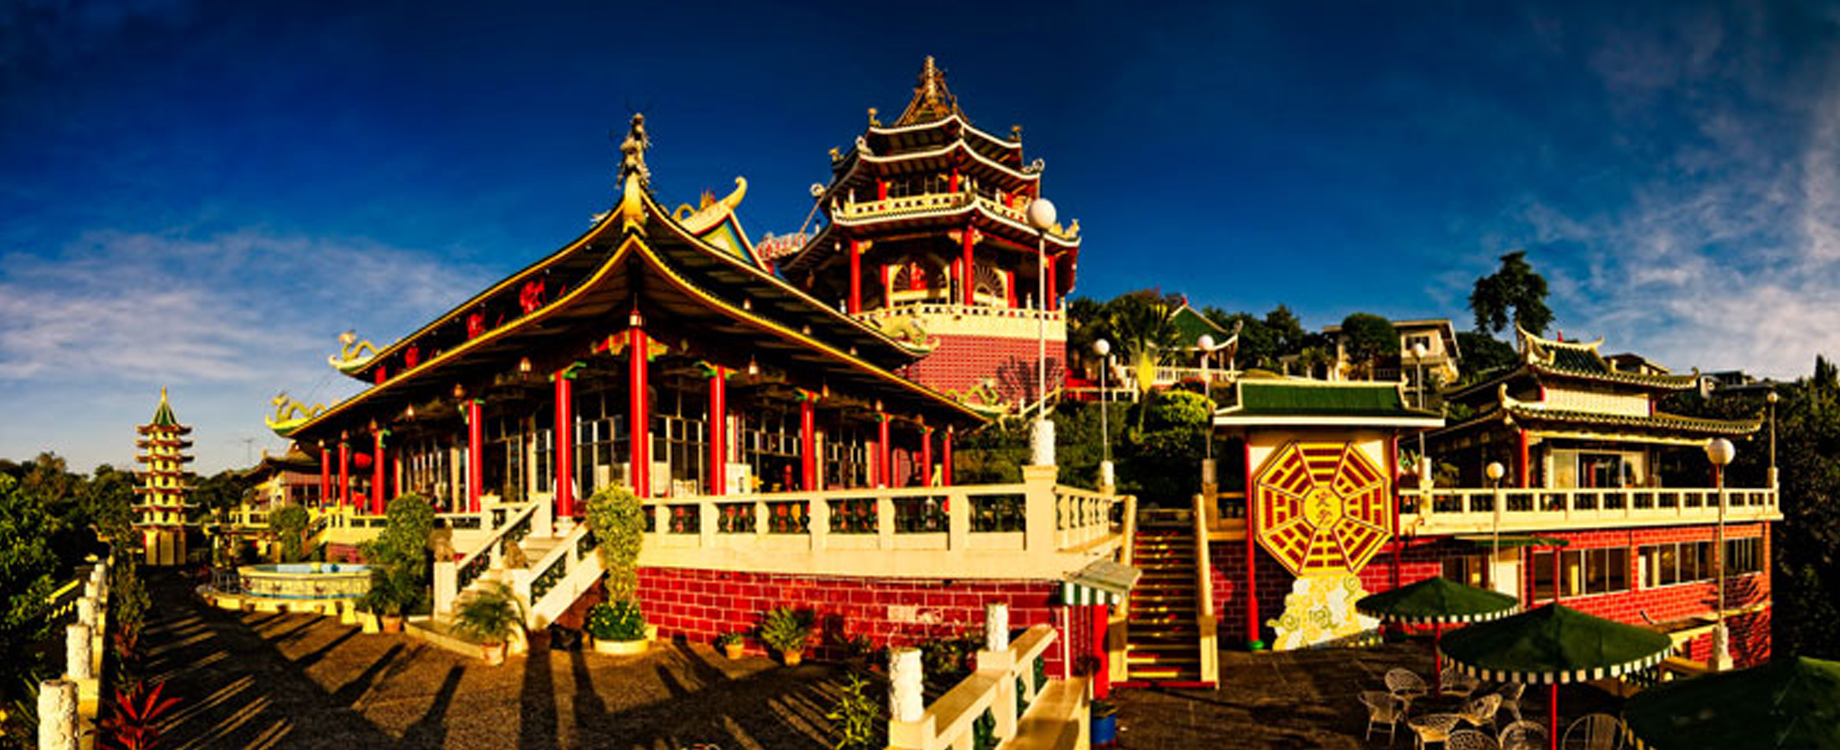 Cebu-Rent-A-Car-Taoist-Temple